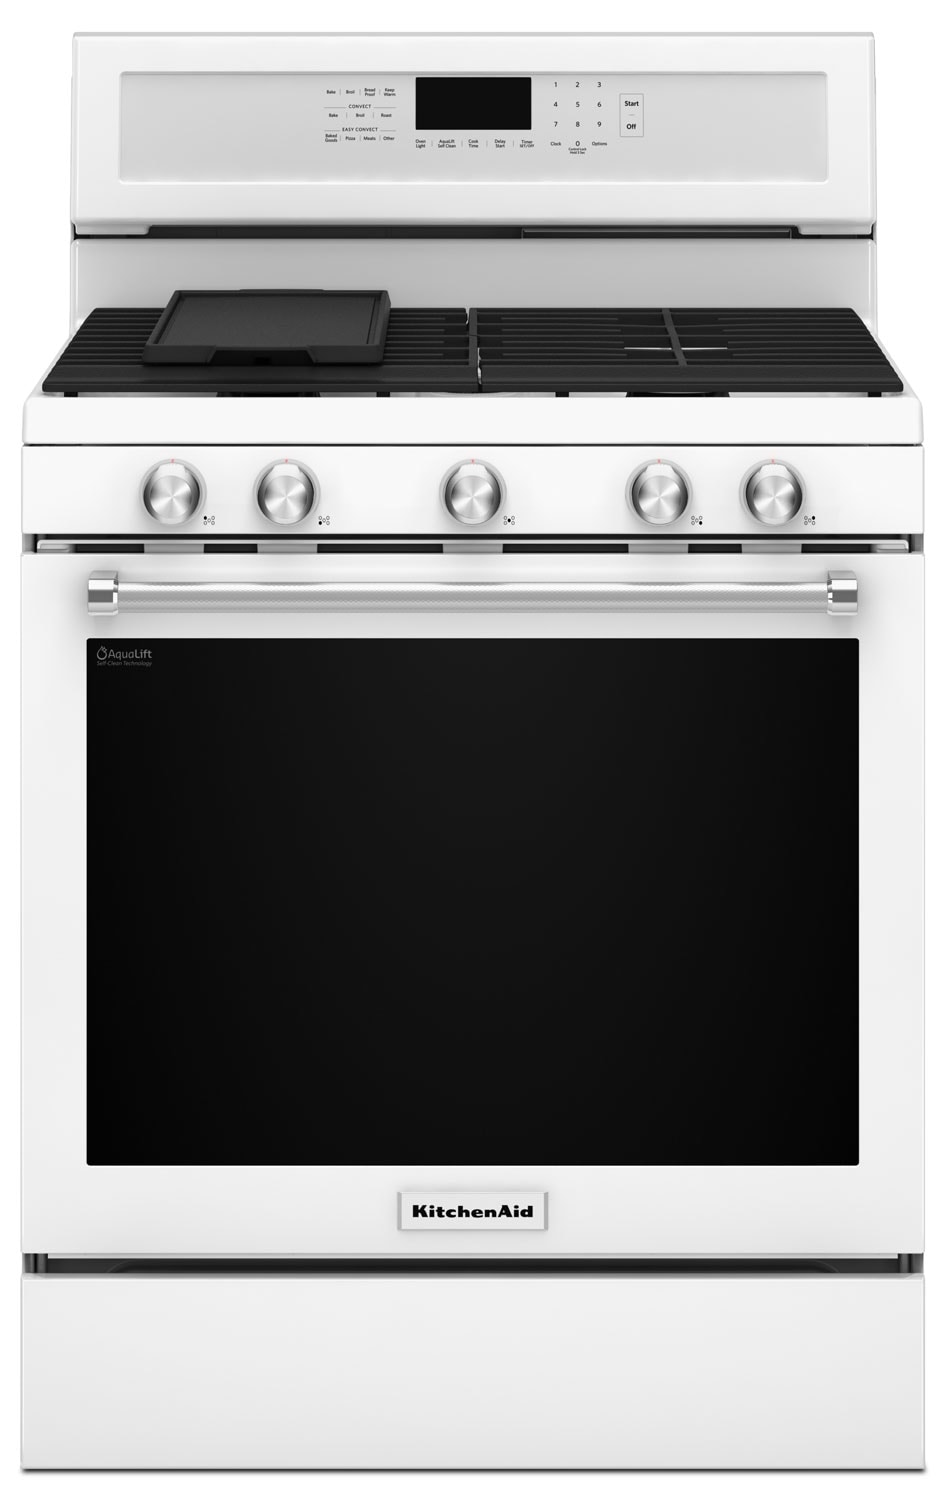 Cooking Products - KitchenAid White Freestanding Gas Range (5.8 Cu. Ft.) - KFGG500EWH